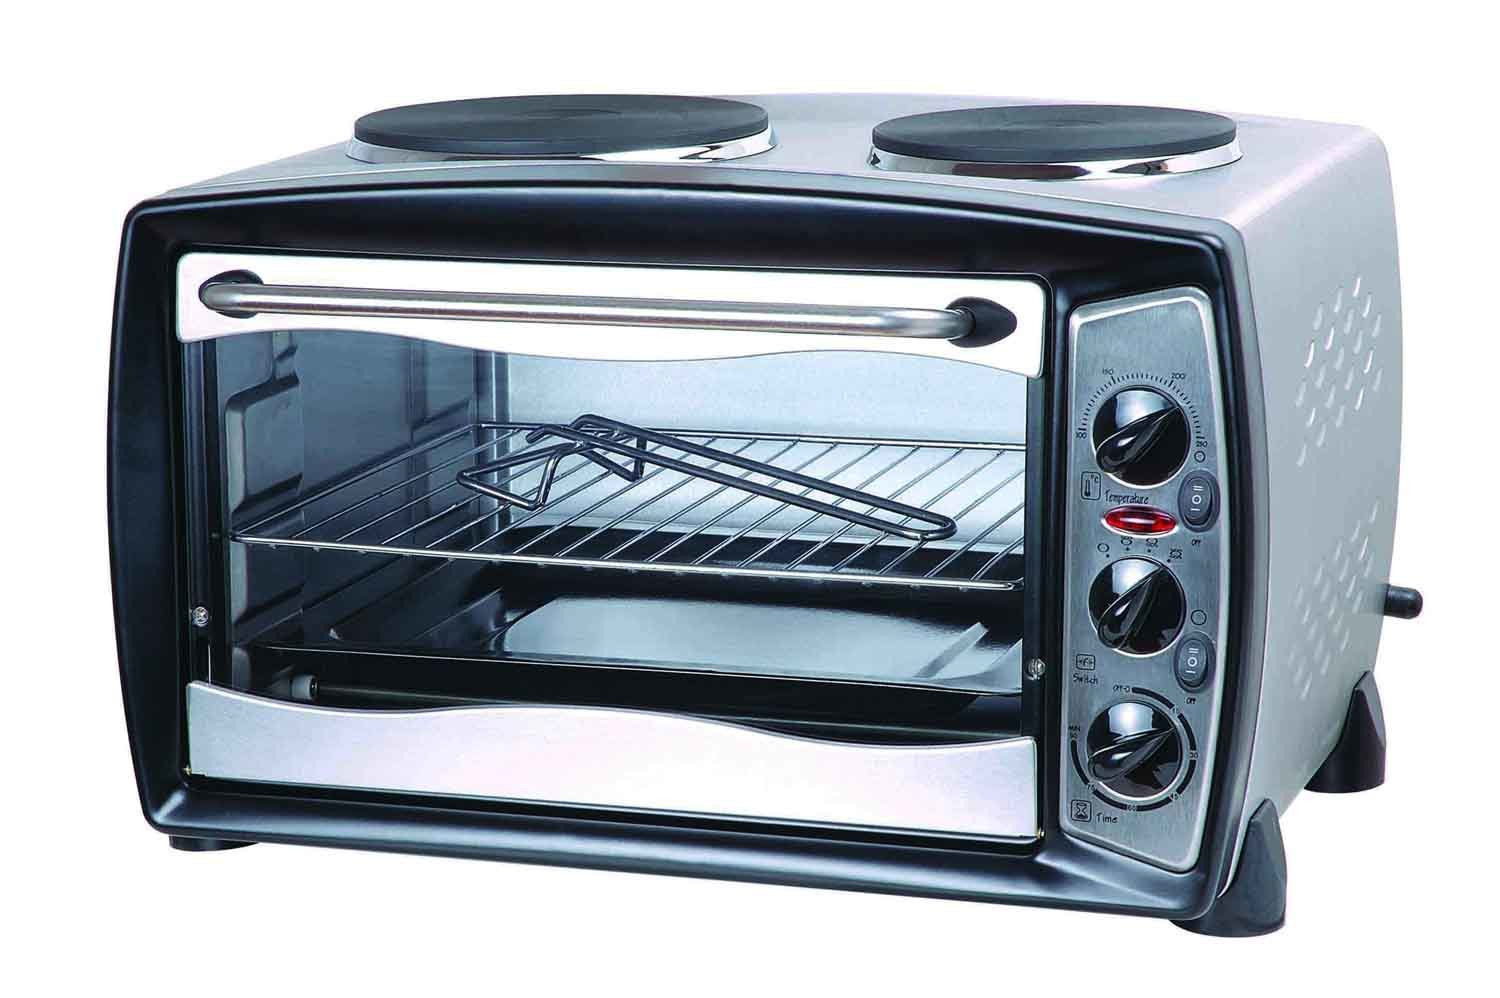 China Electric Oven(HK-26) - China Electric Oven, Toaster Oven